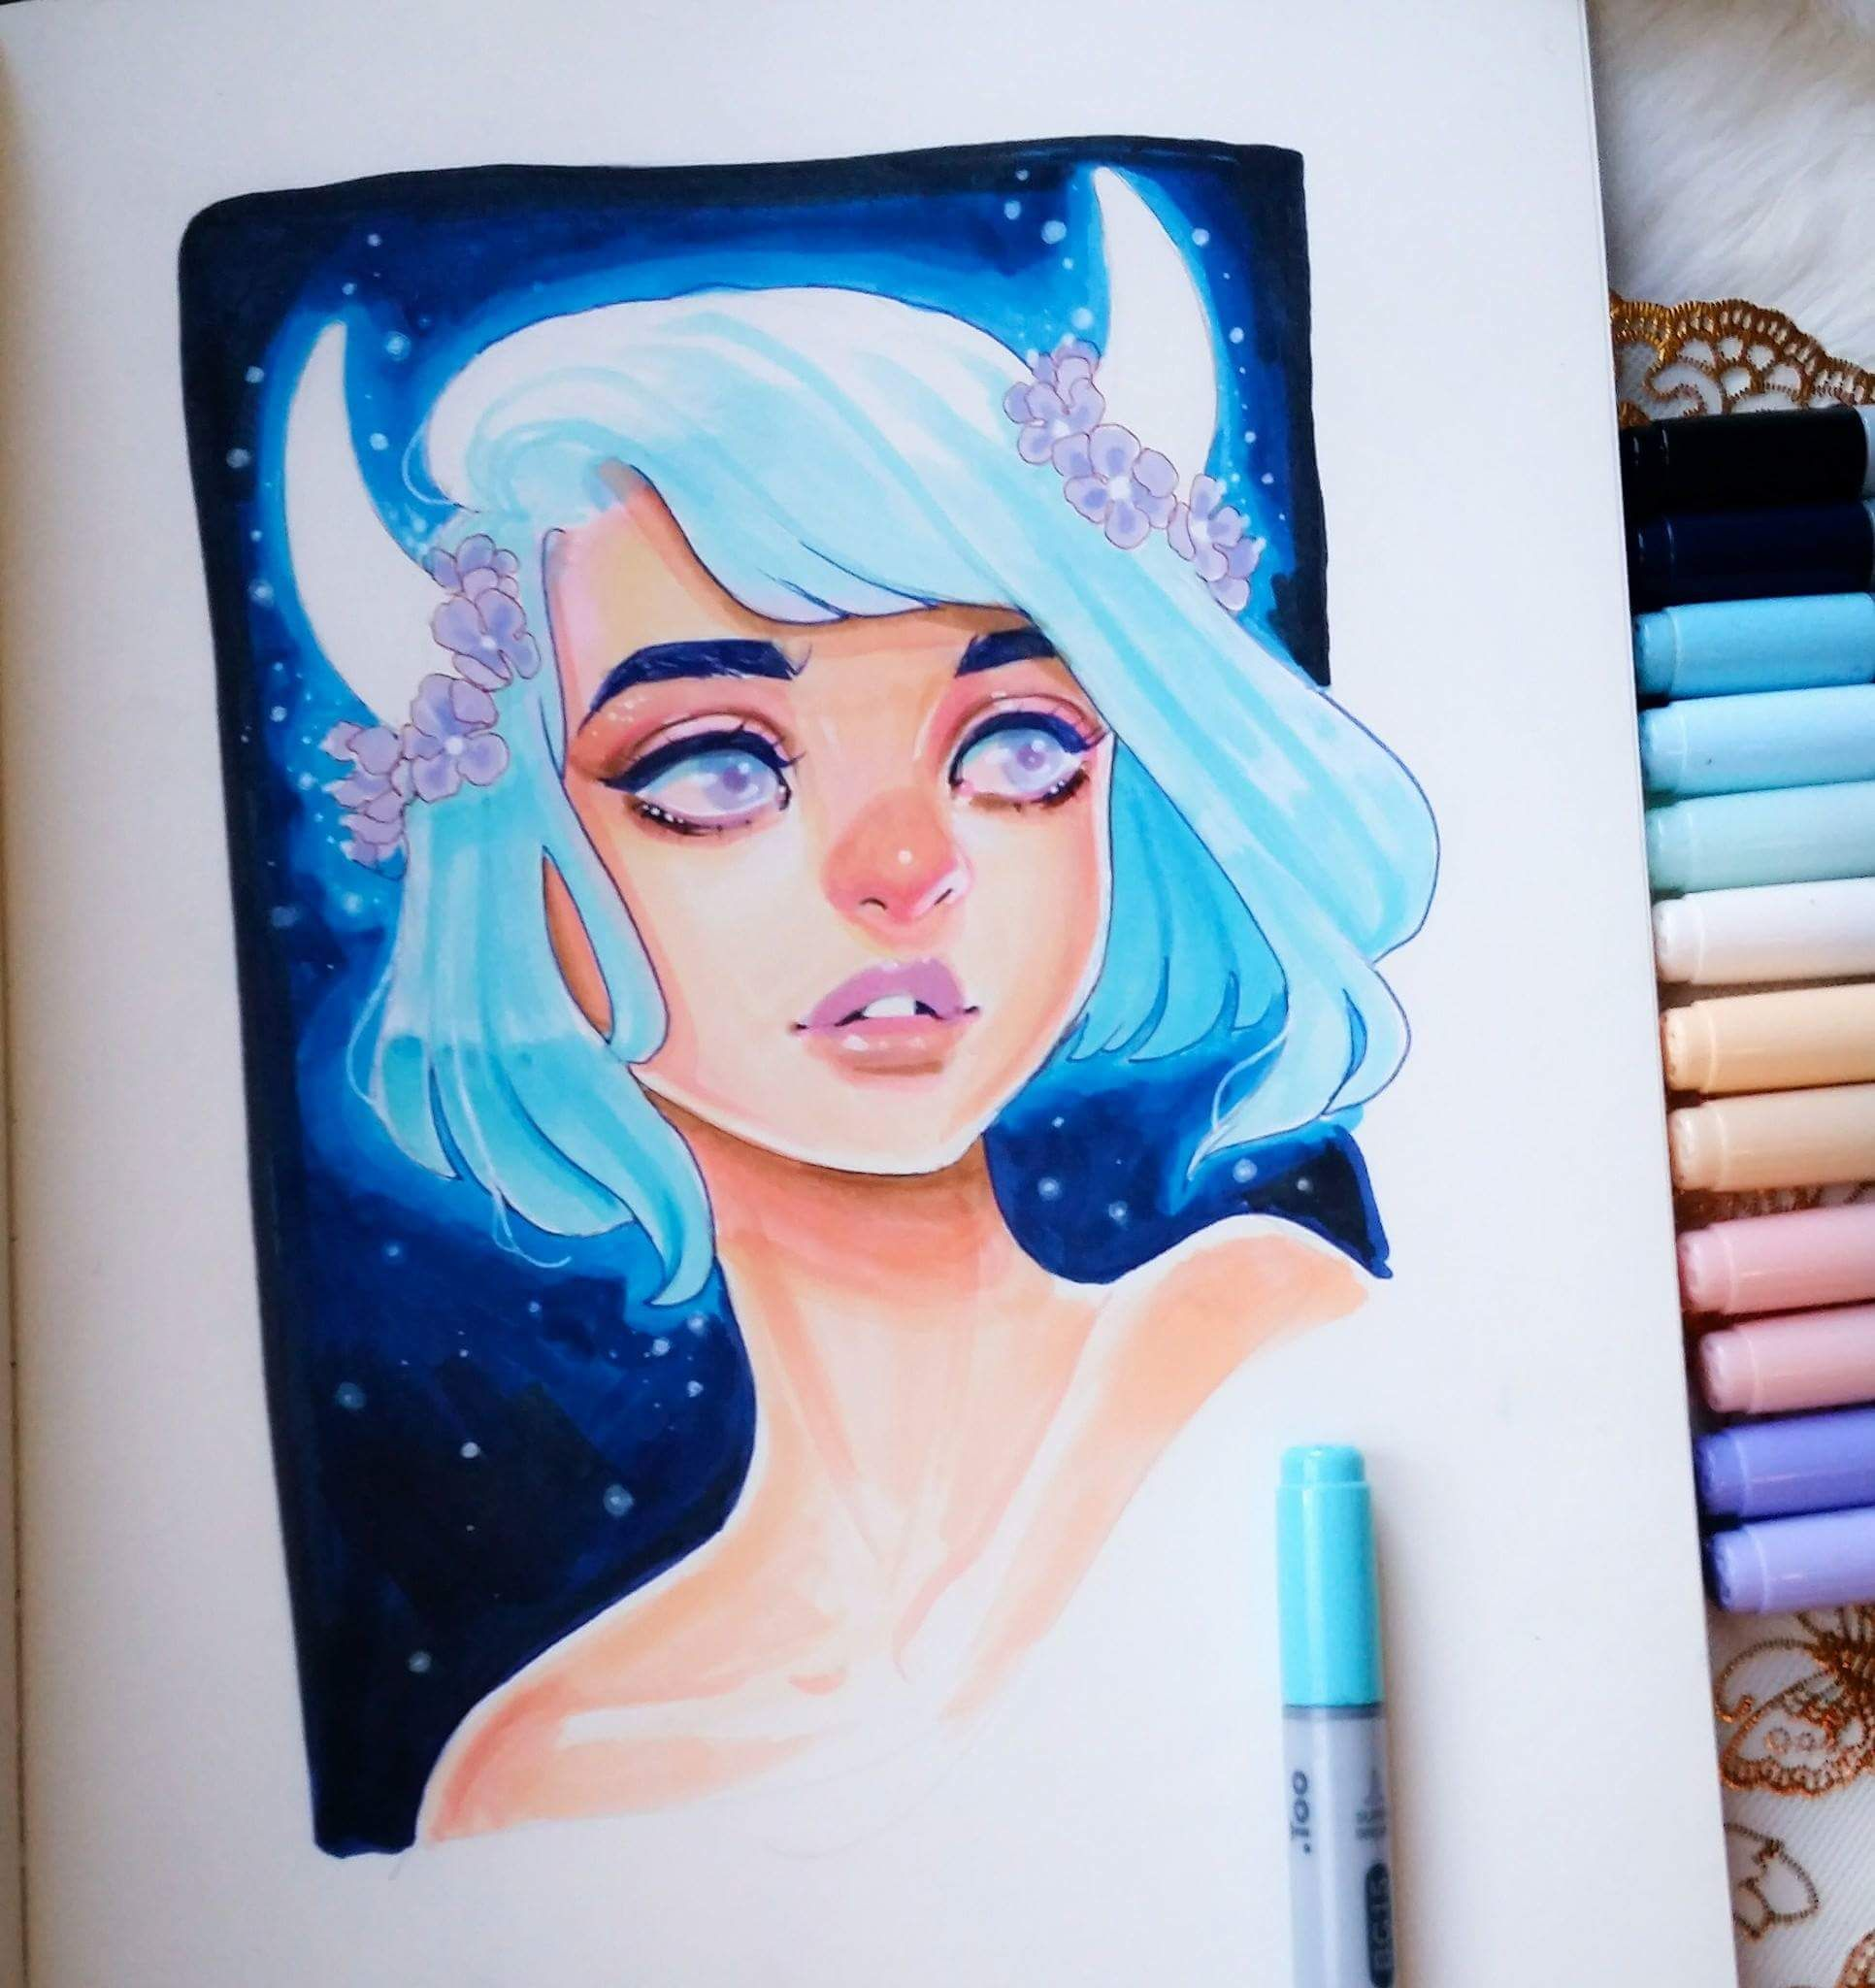 Thirzah From Lord Gris With Images Copic Marker Art Copic